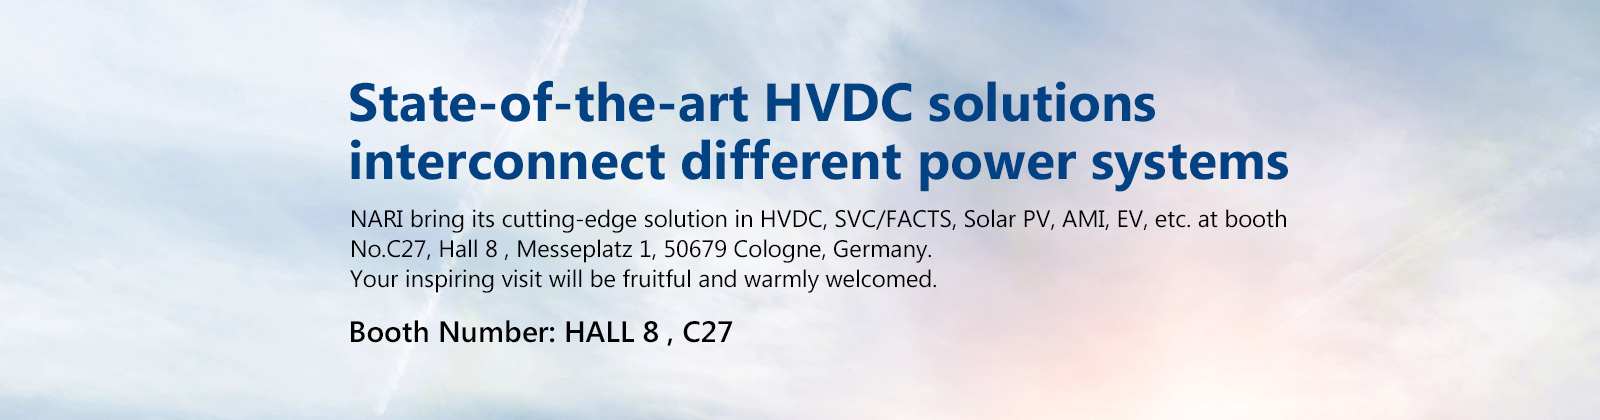 State-of-the-art HVDC solution